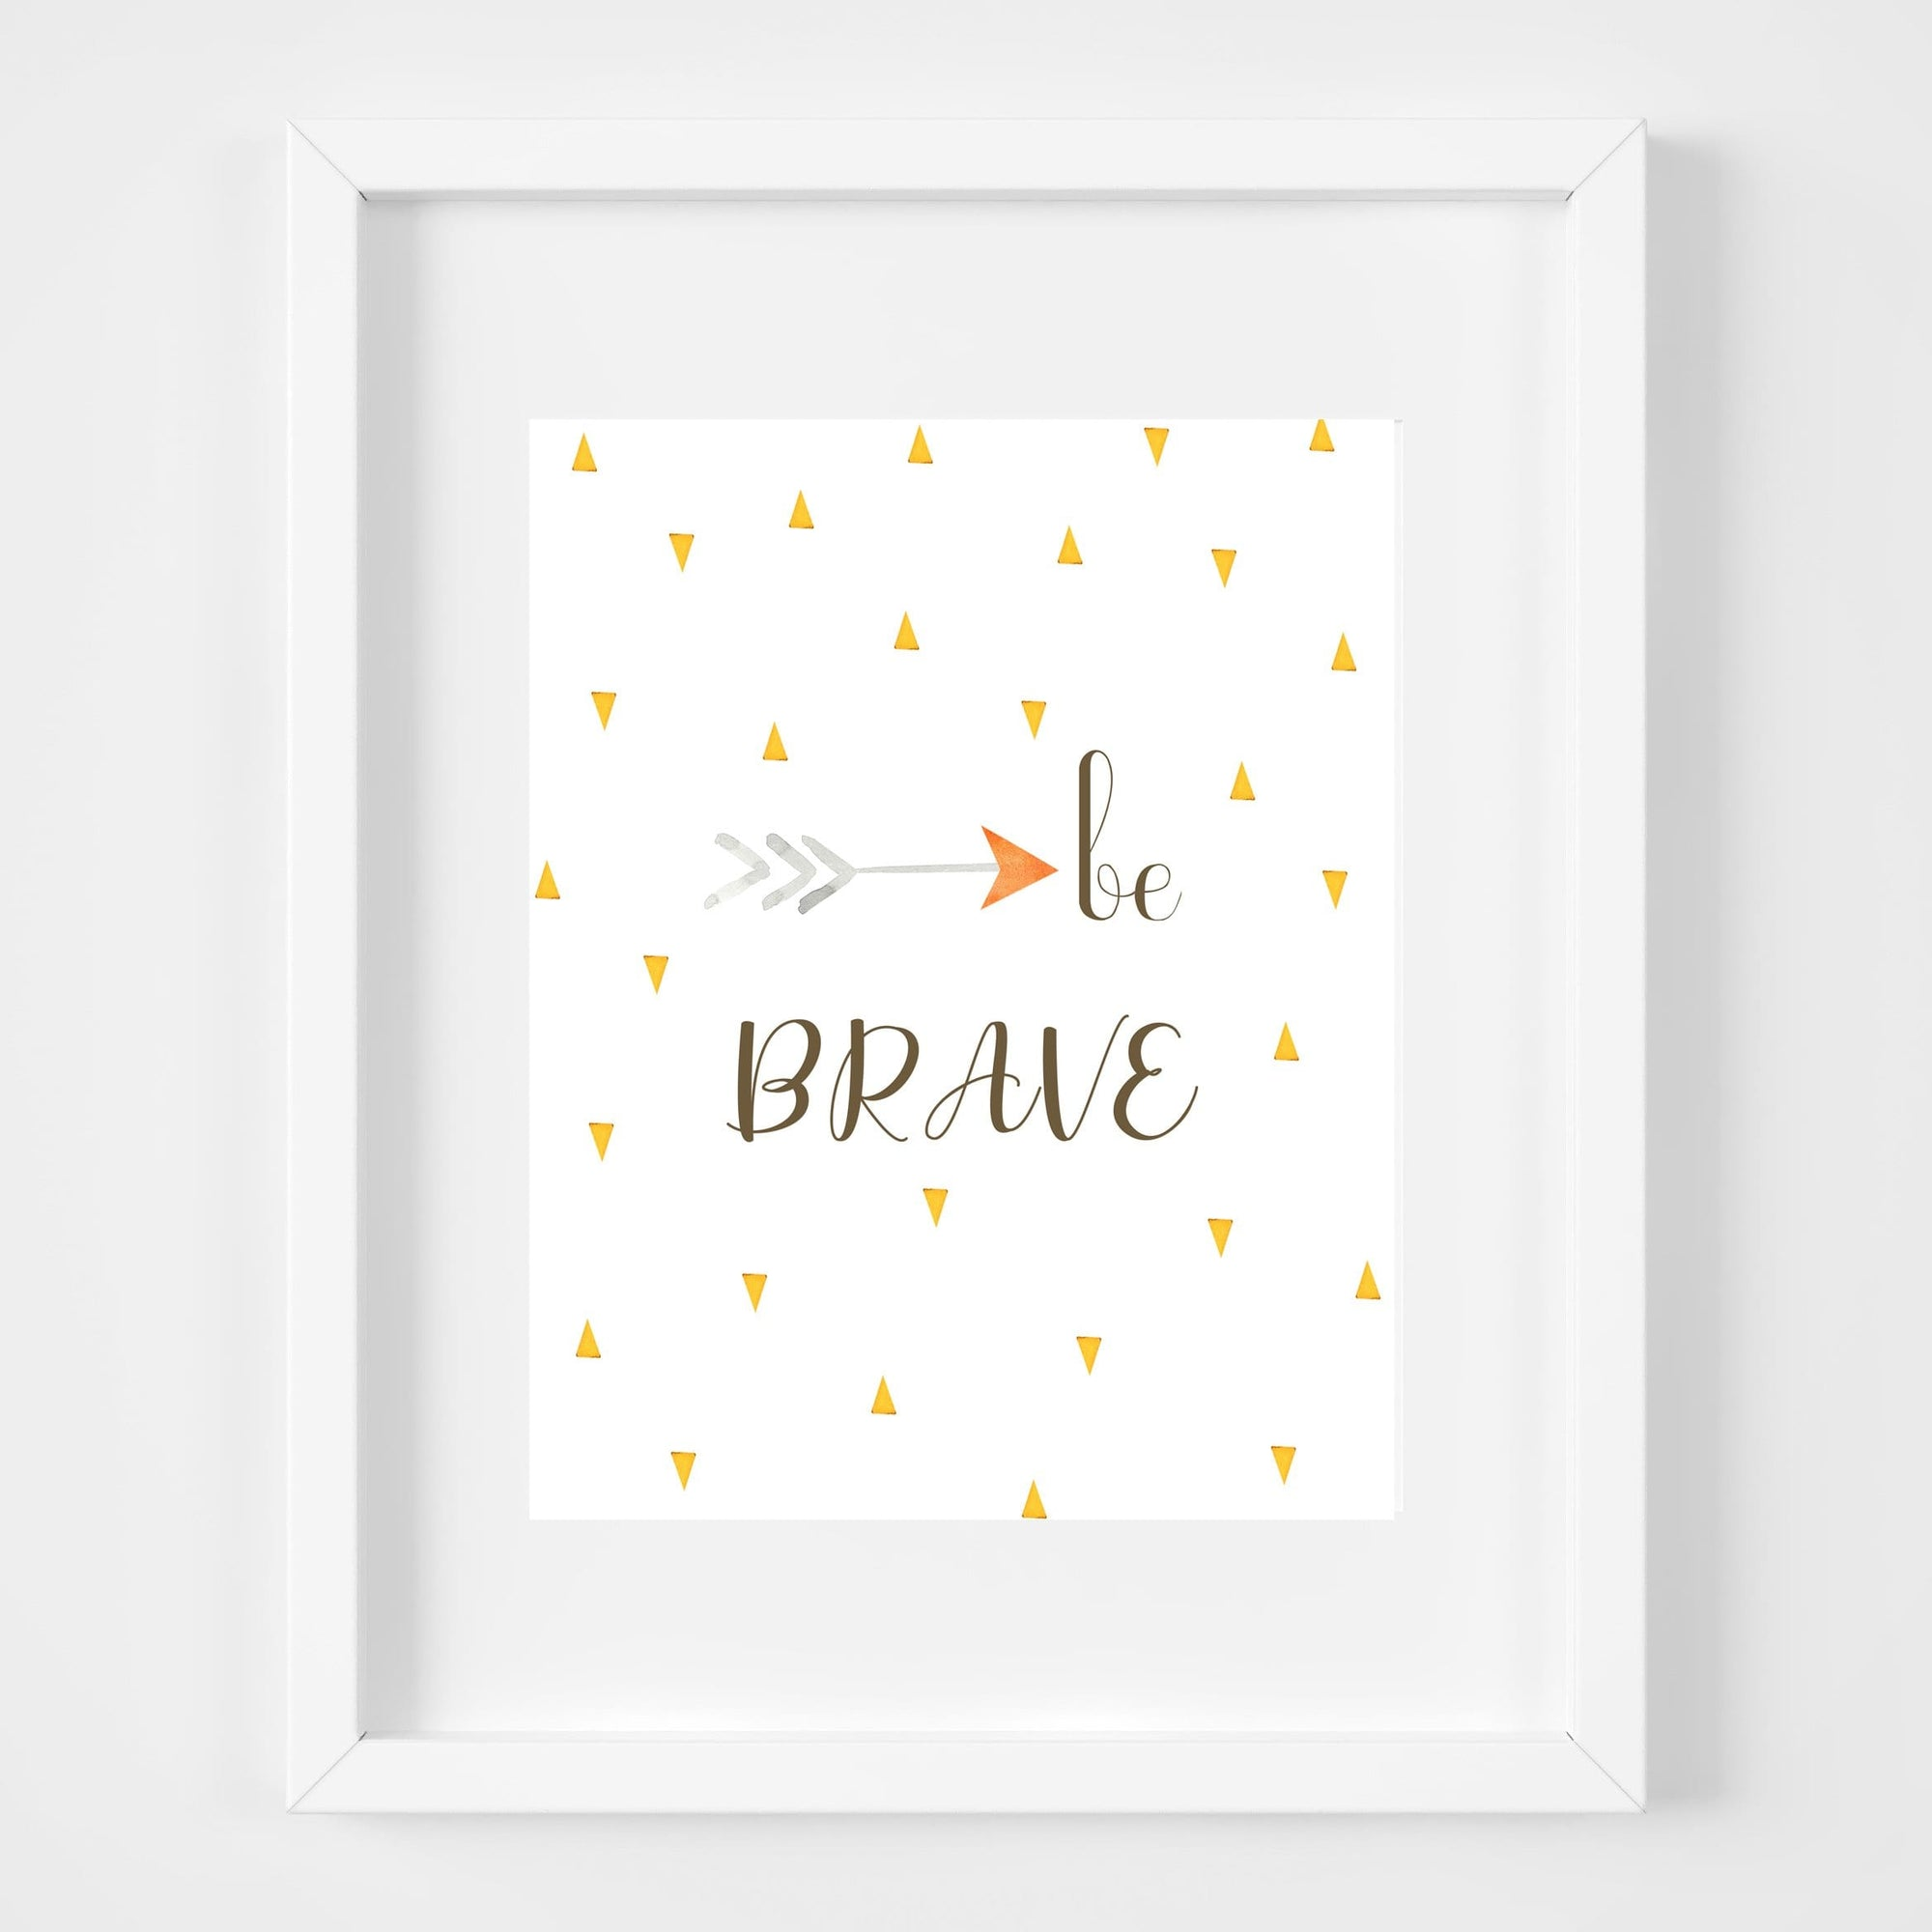 bebemoss.com Be brave print handmade by moms  gifts with purpose